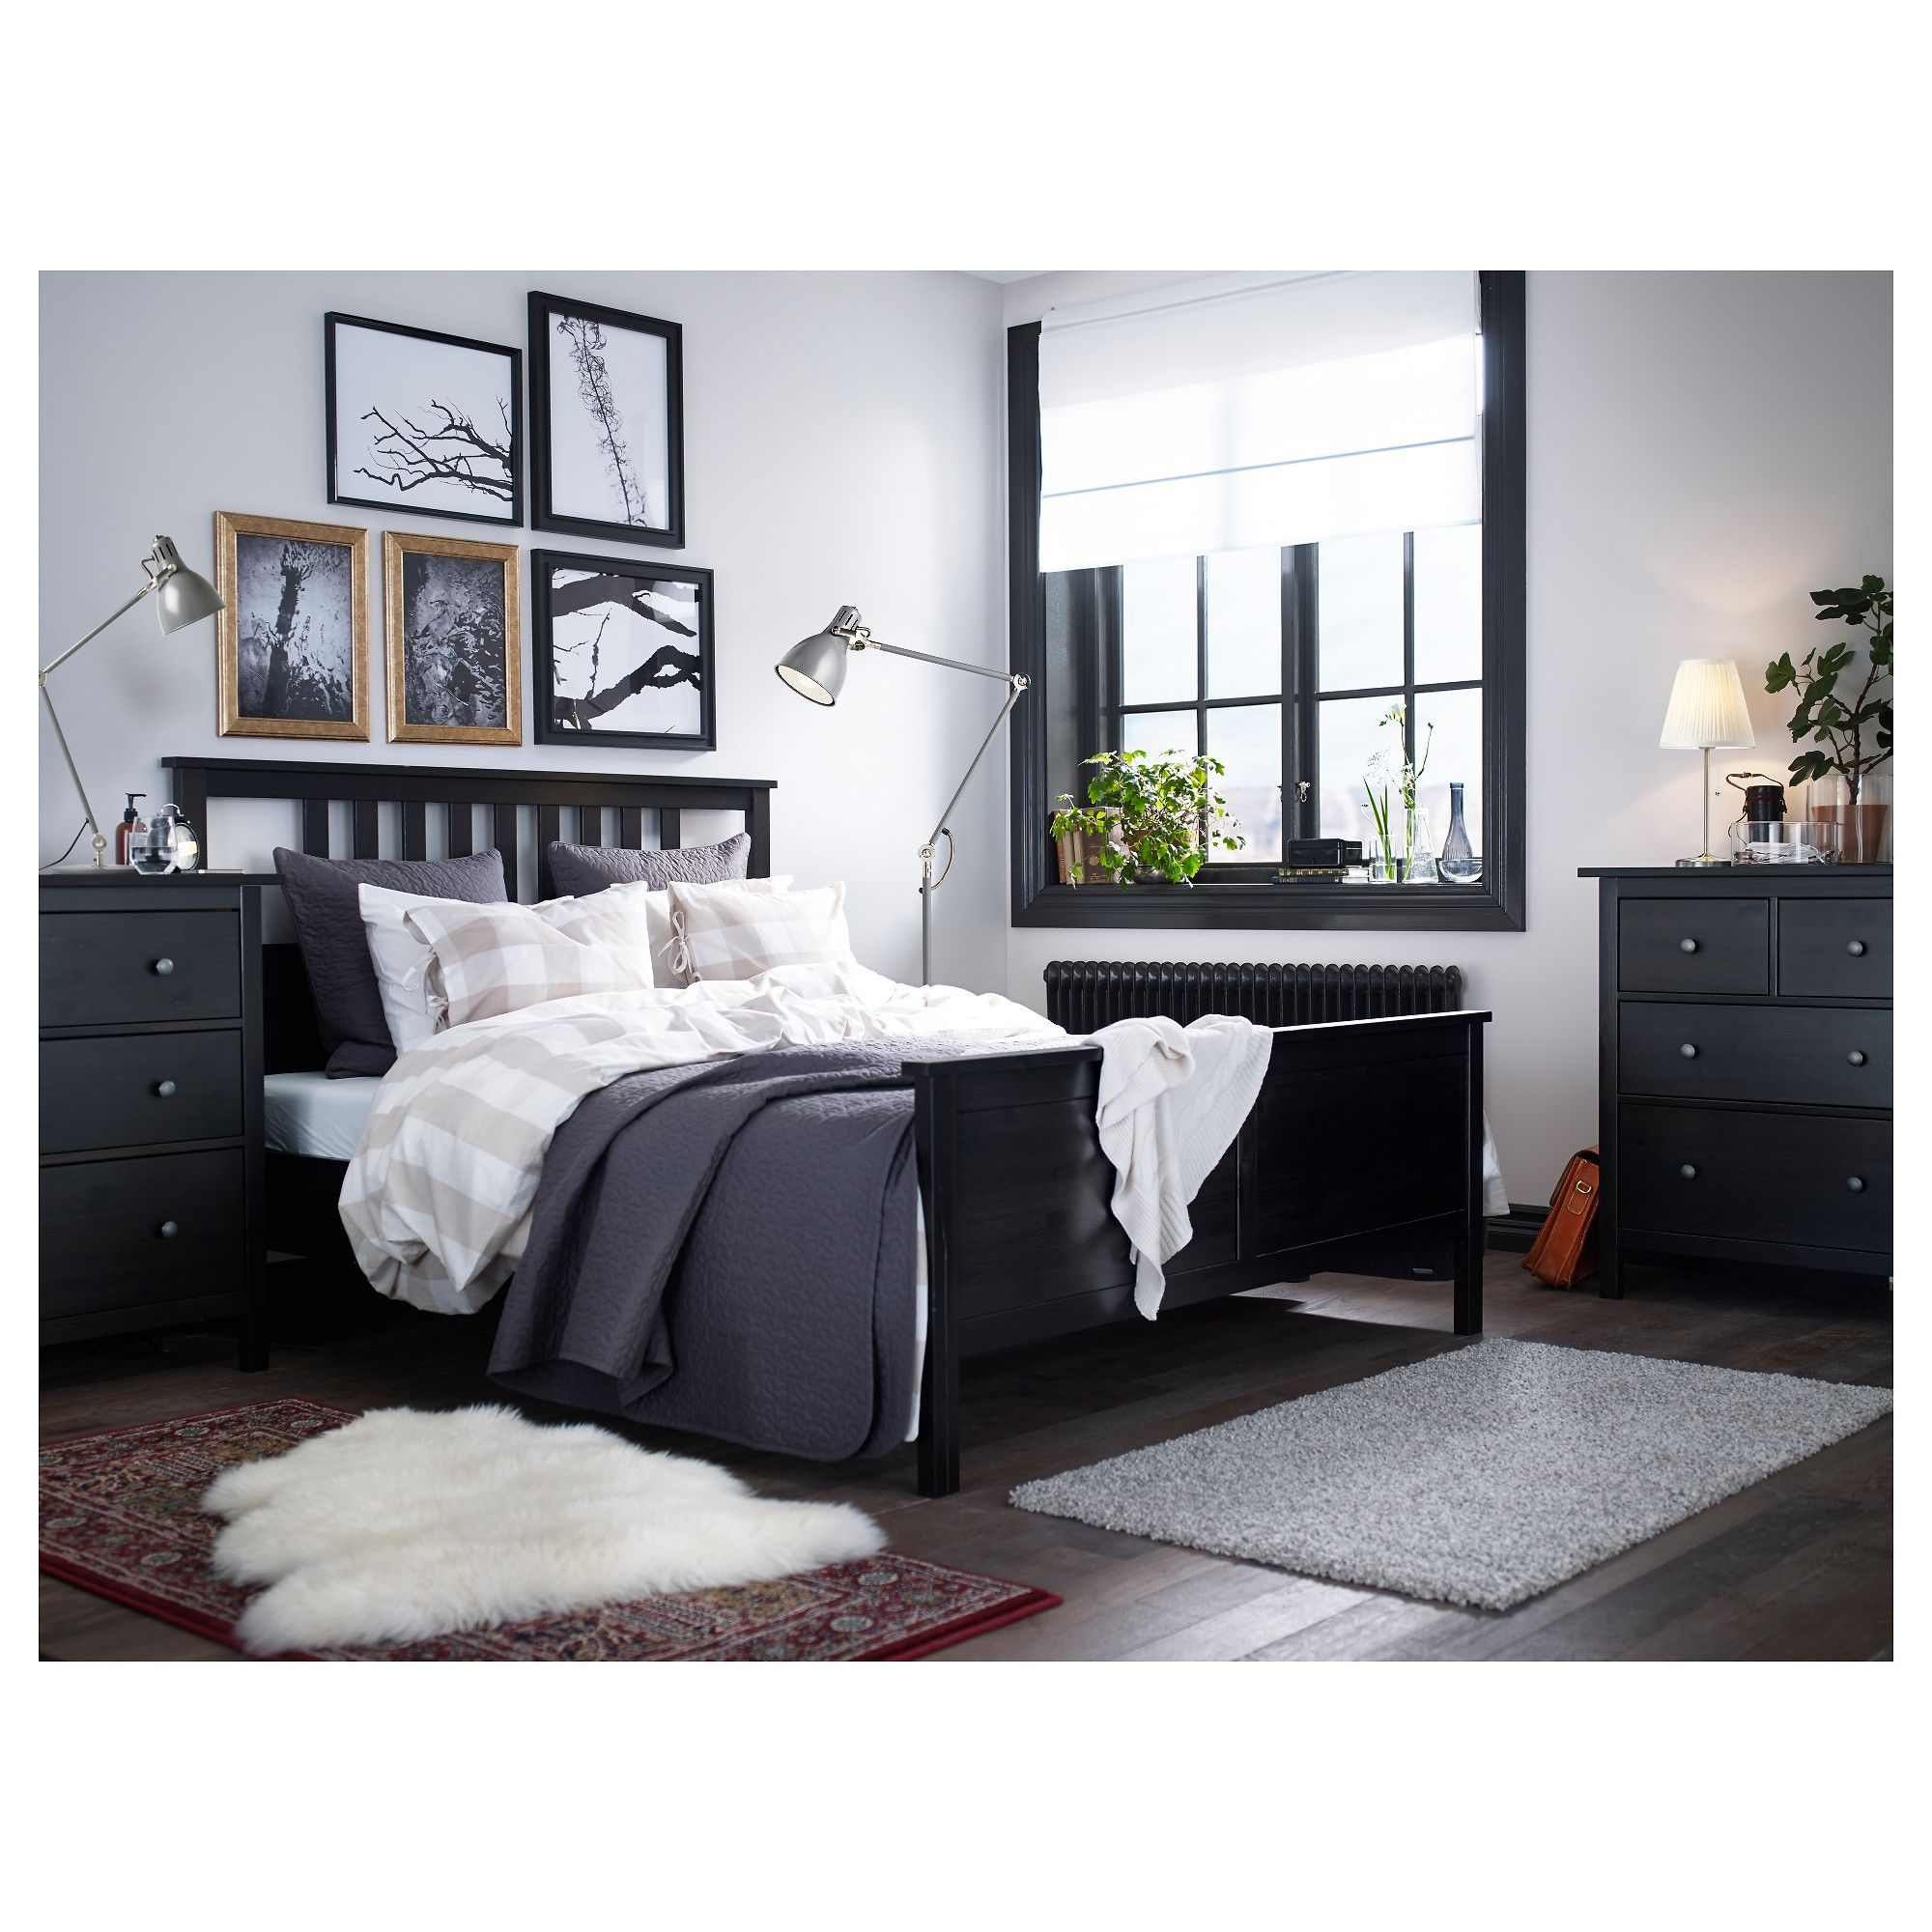 IKEA HEMNES Bed frame blackbrown, Espevär Black